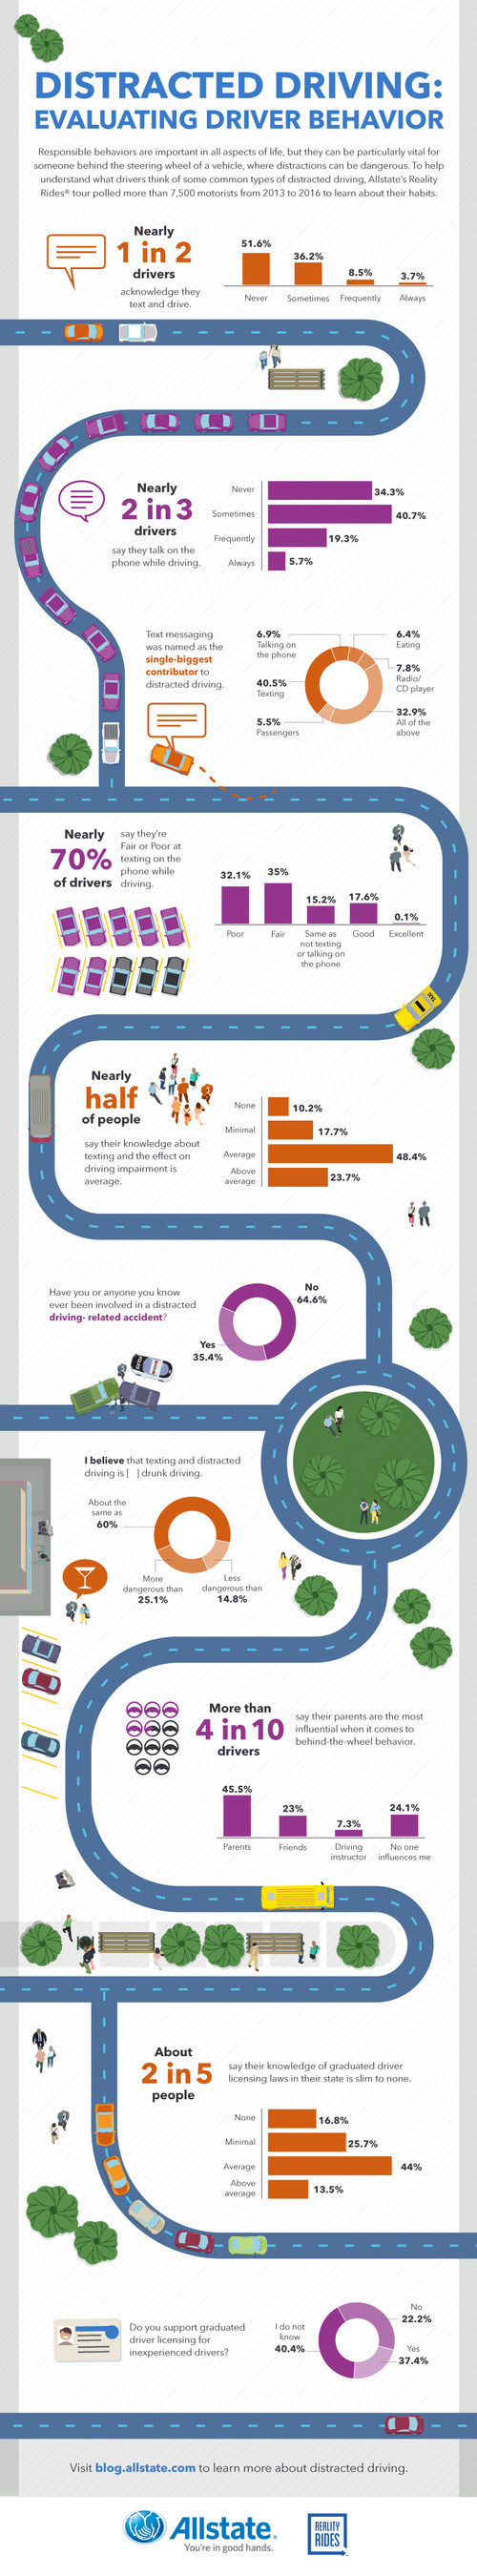 Infographic: Reality Rides measures drivers' distracted driving habits